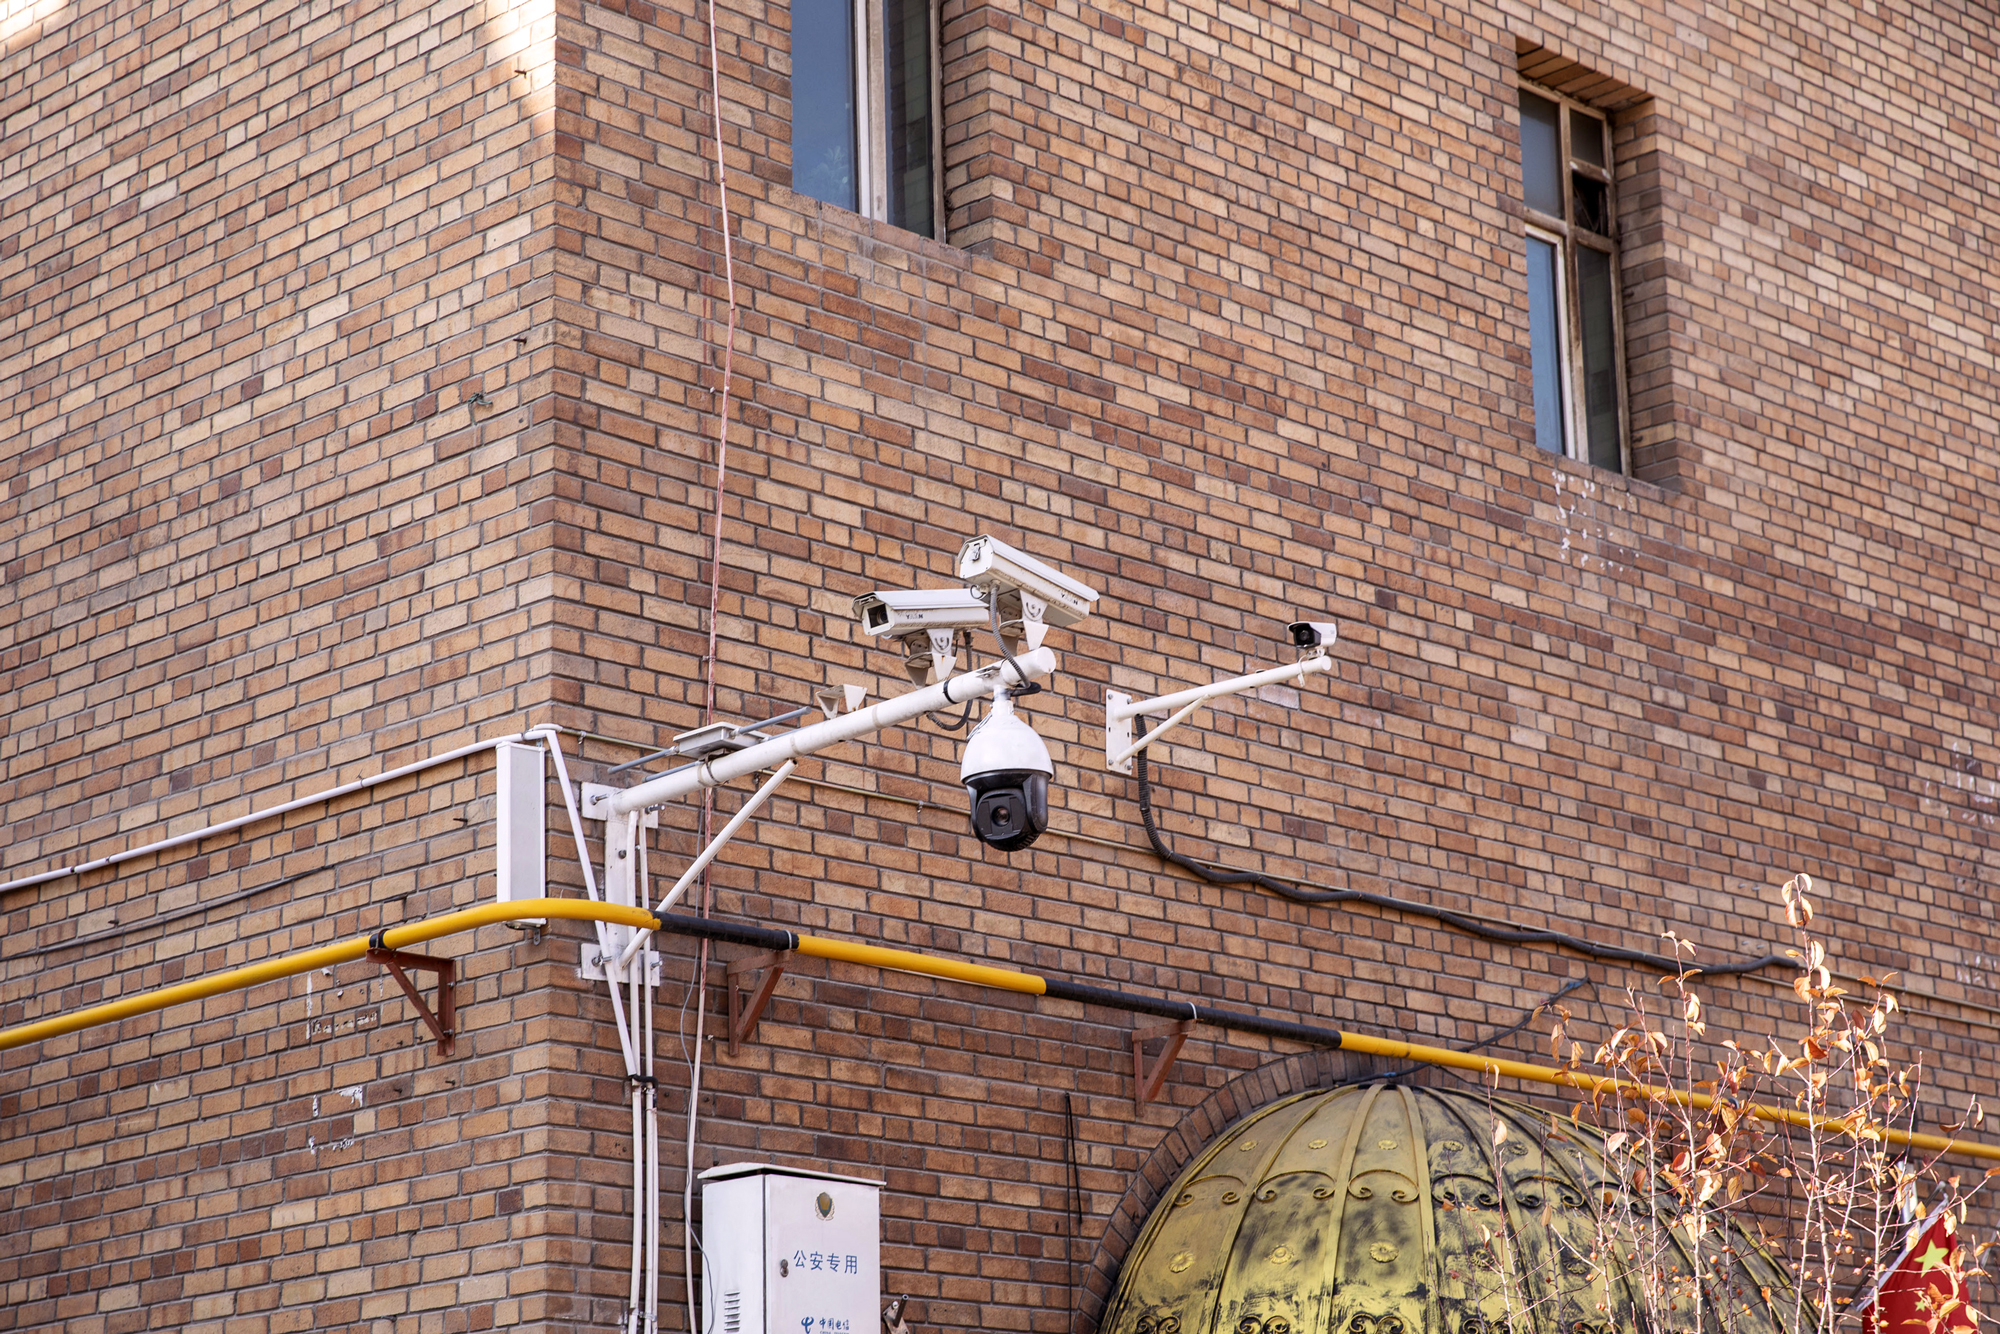 Surveillance cameras are mounted to the exterior of a mosque in the main bazaar in Urumqi, Xinjiang autonomousregion, China, on Nov. 6, 2018.